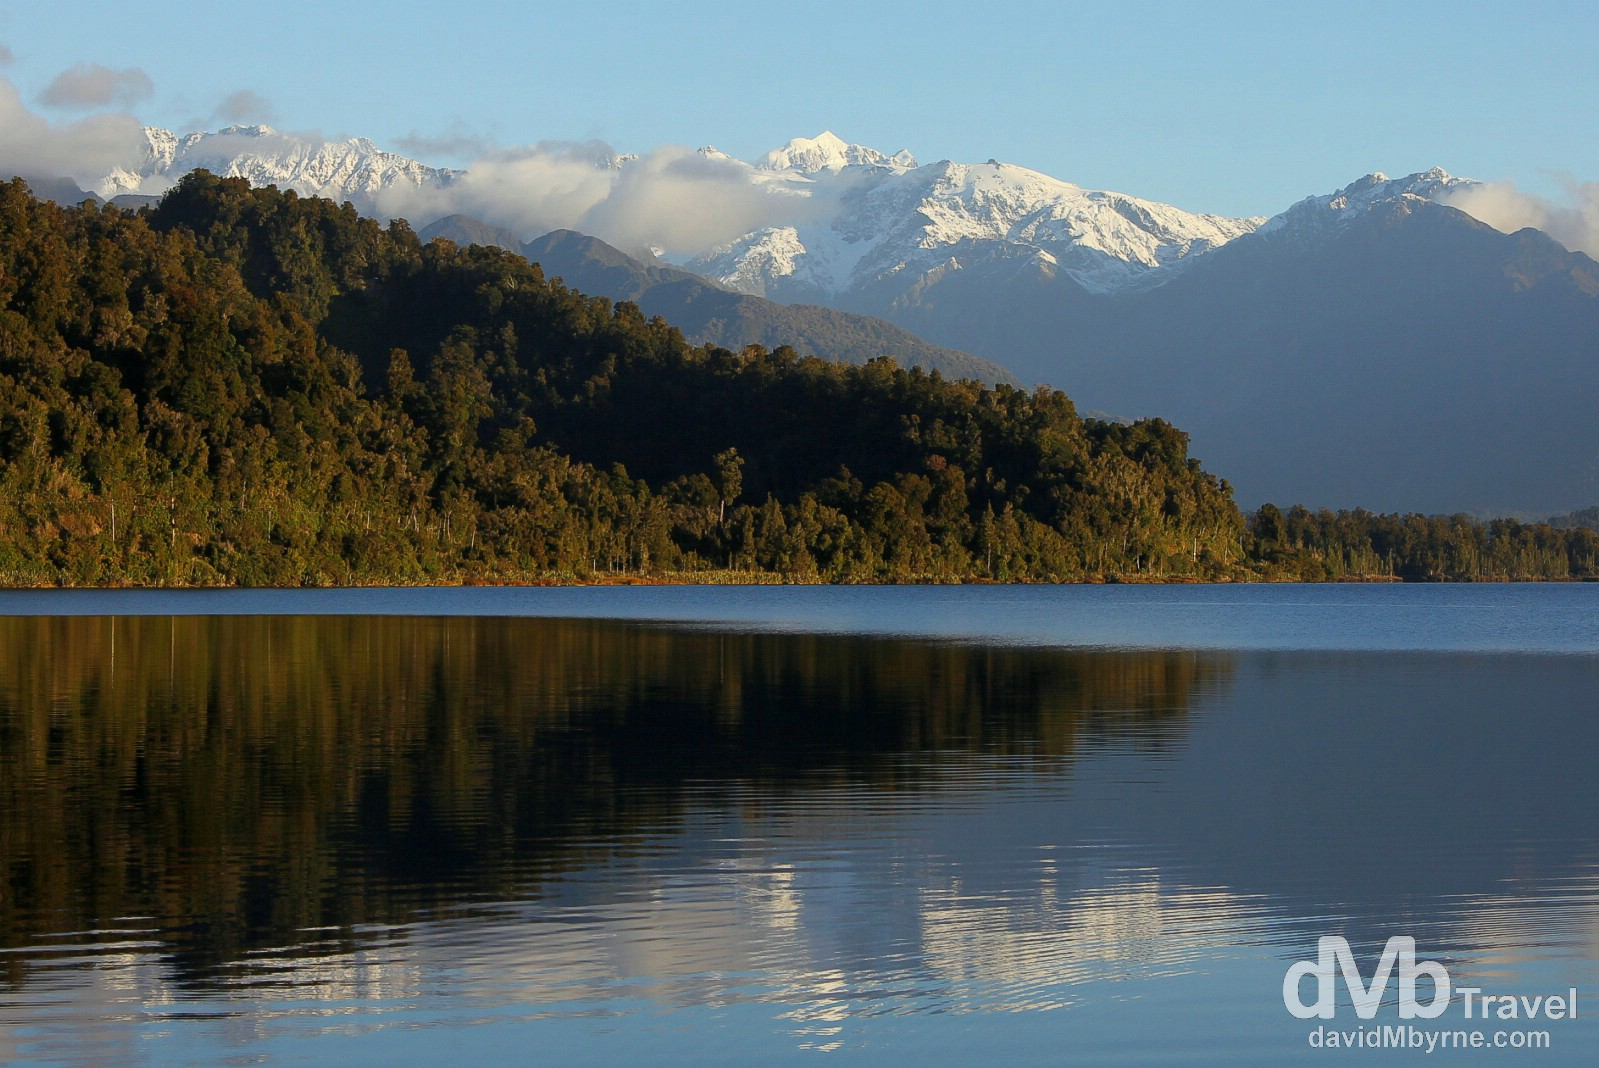 The Southern Alps as seen from the shores of Lake Mapourika, South Island, New Zealand. May 18th 2012.